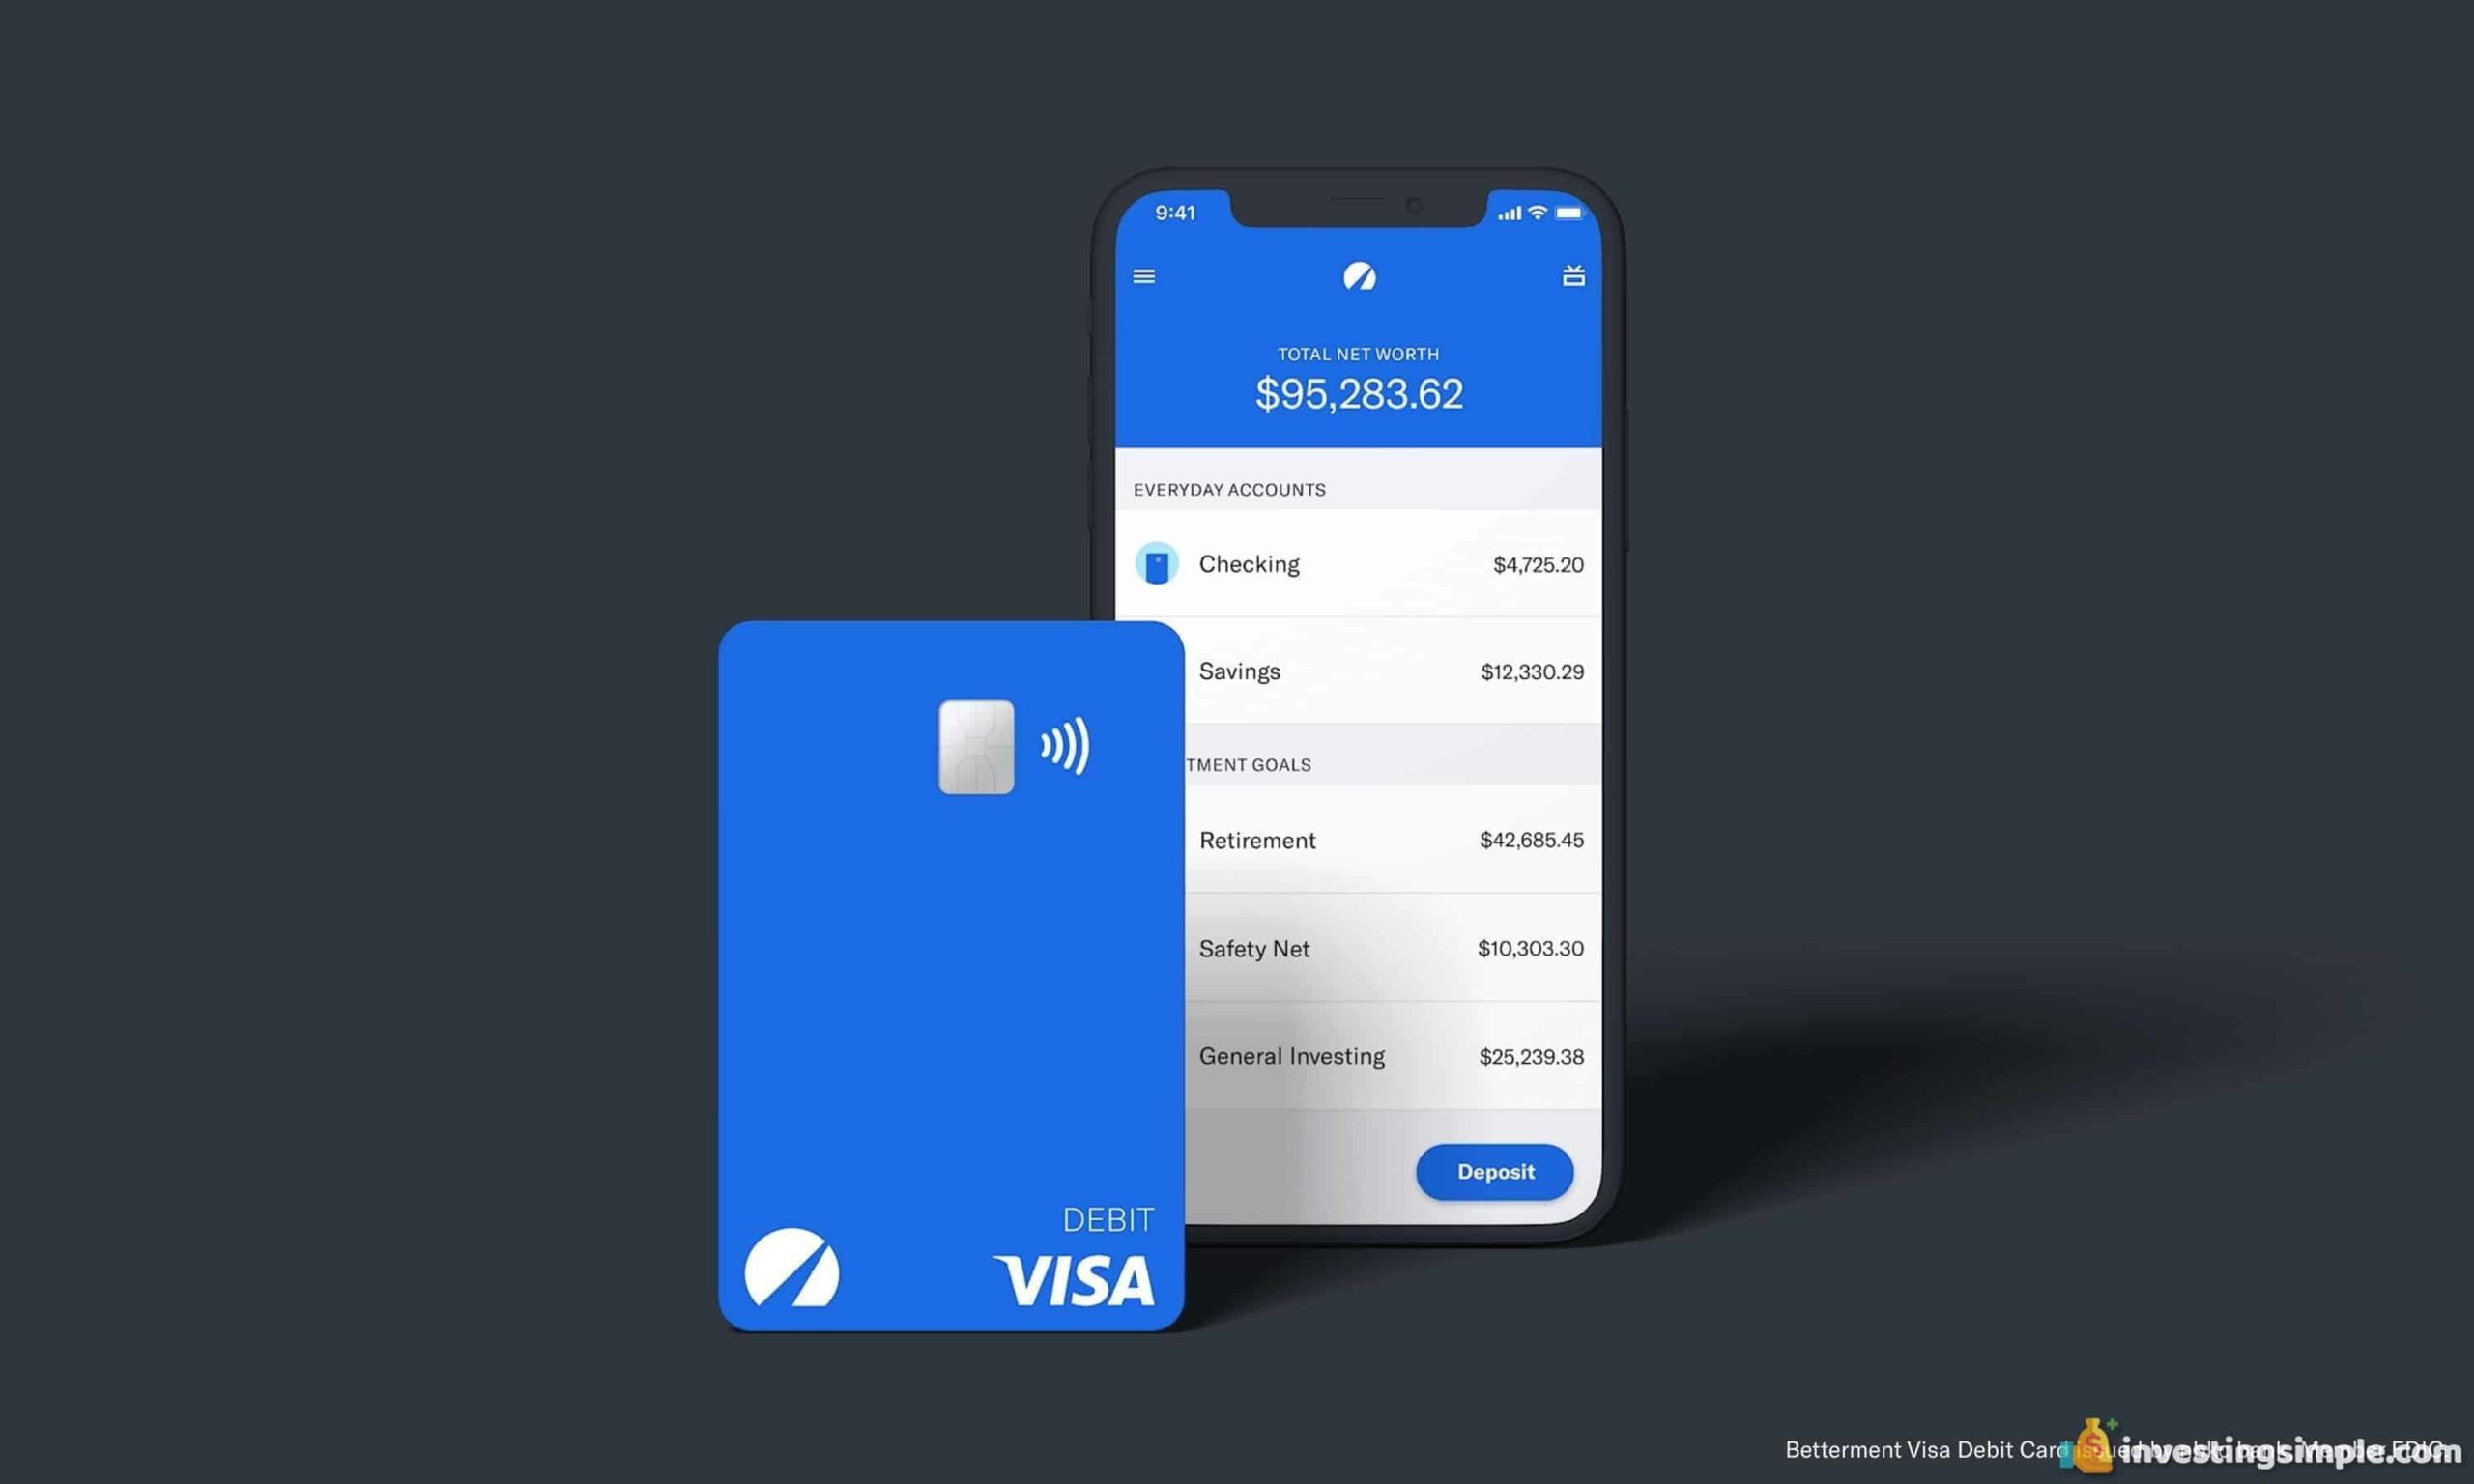 Betterment everyday review. Betterment is now offering one of the highest interest rate savings and checking bank accounts in the industry.